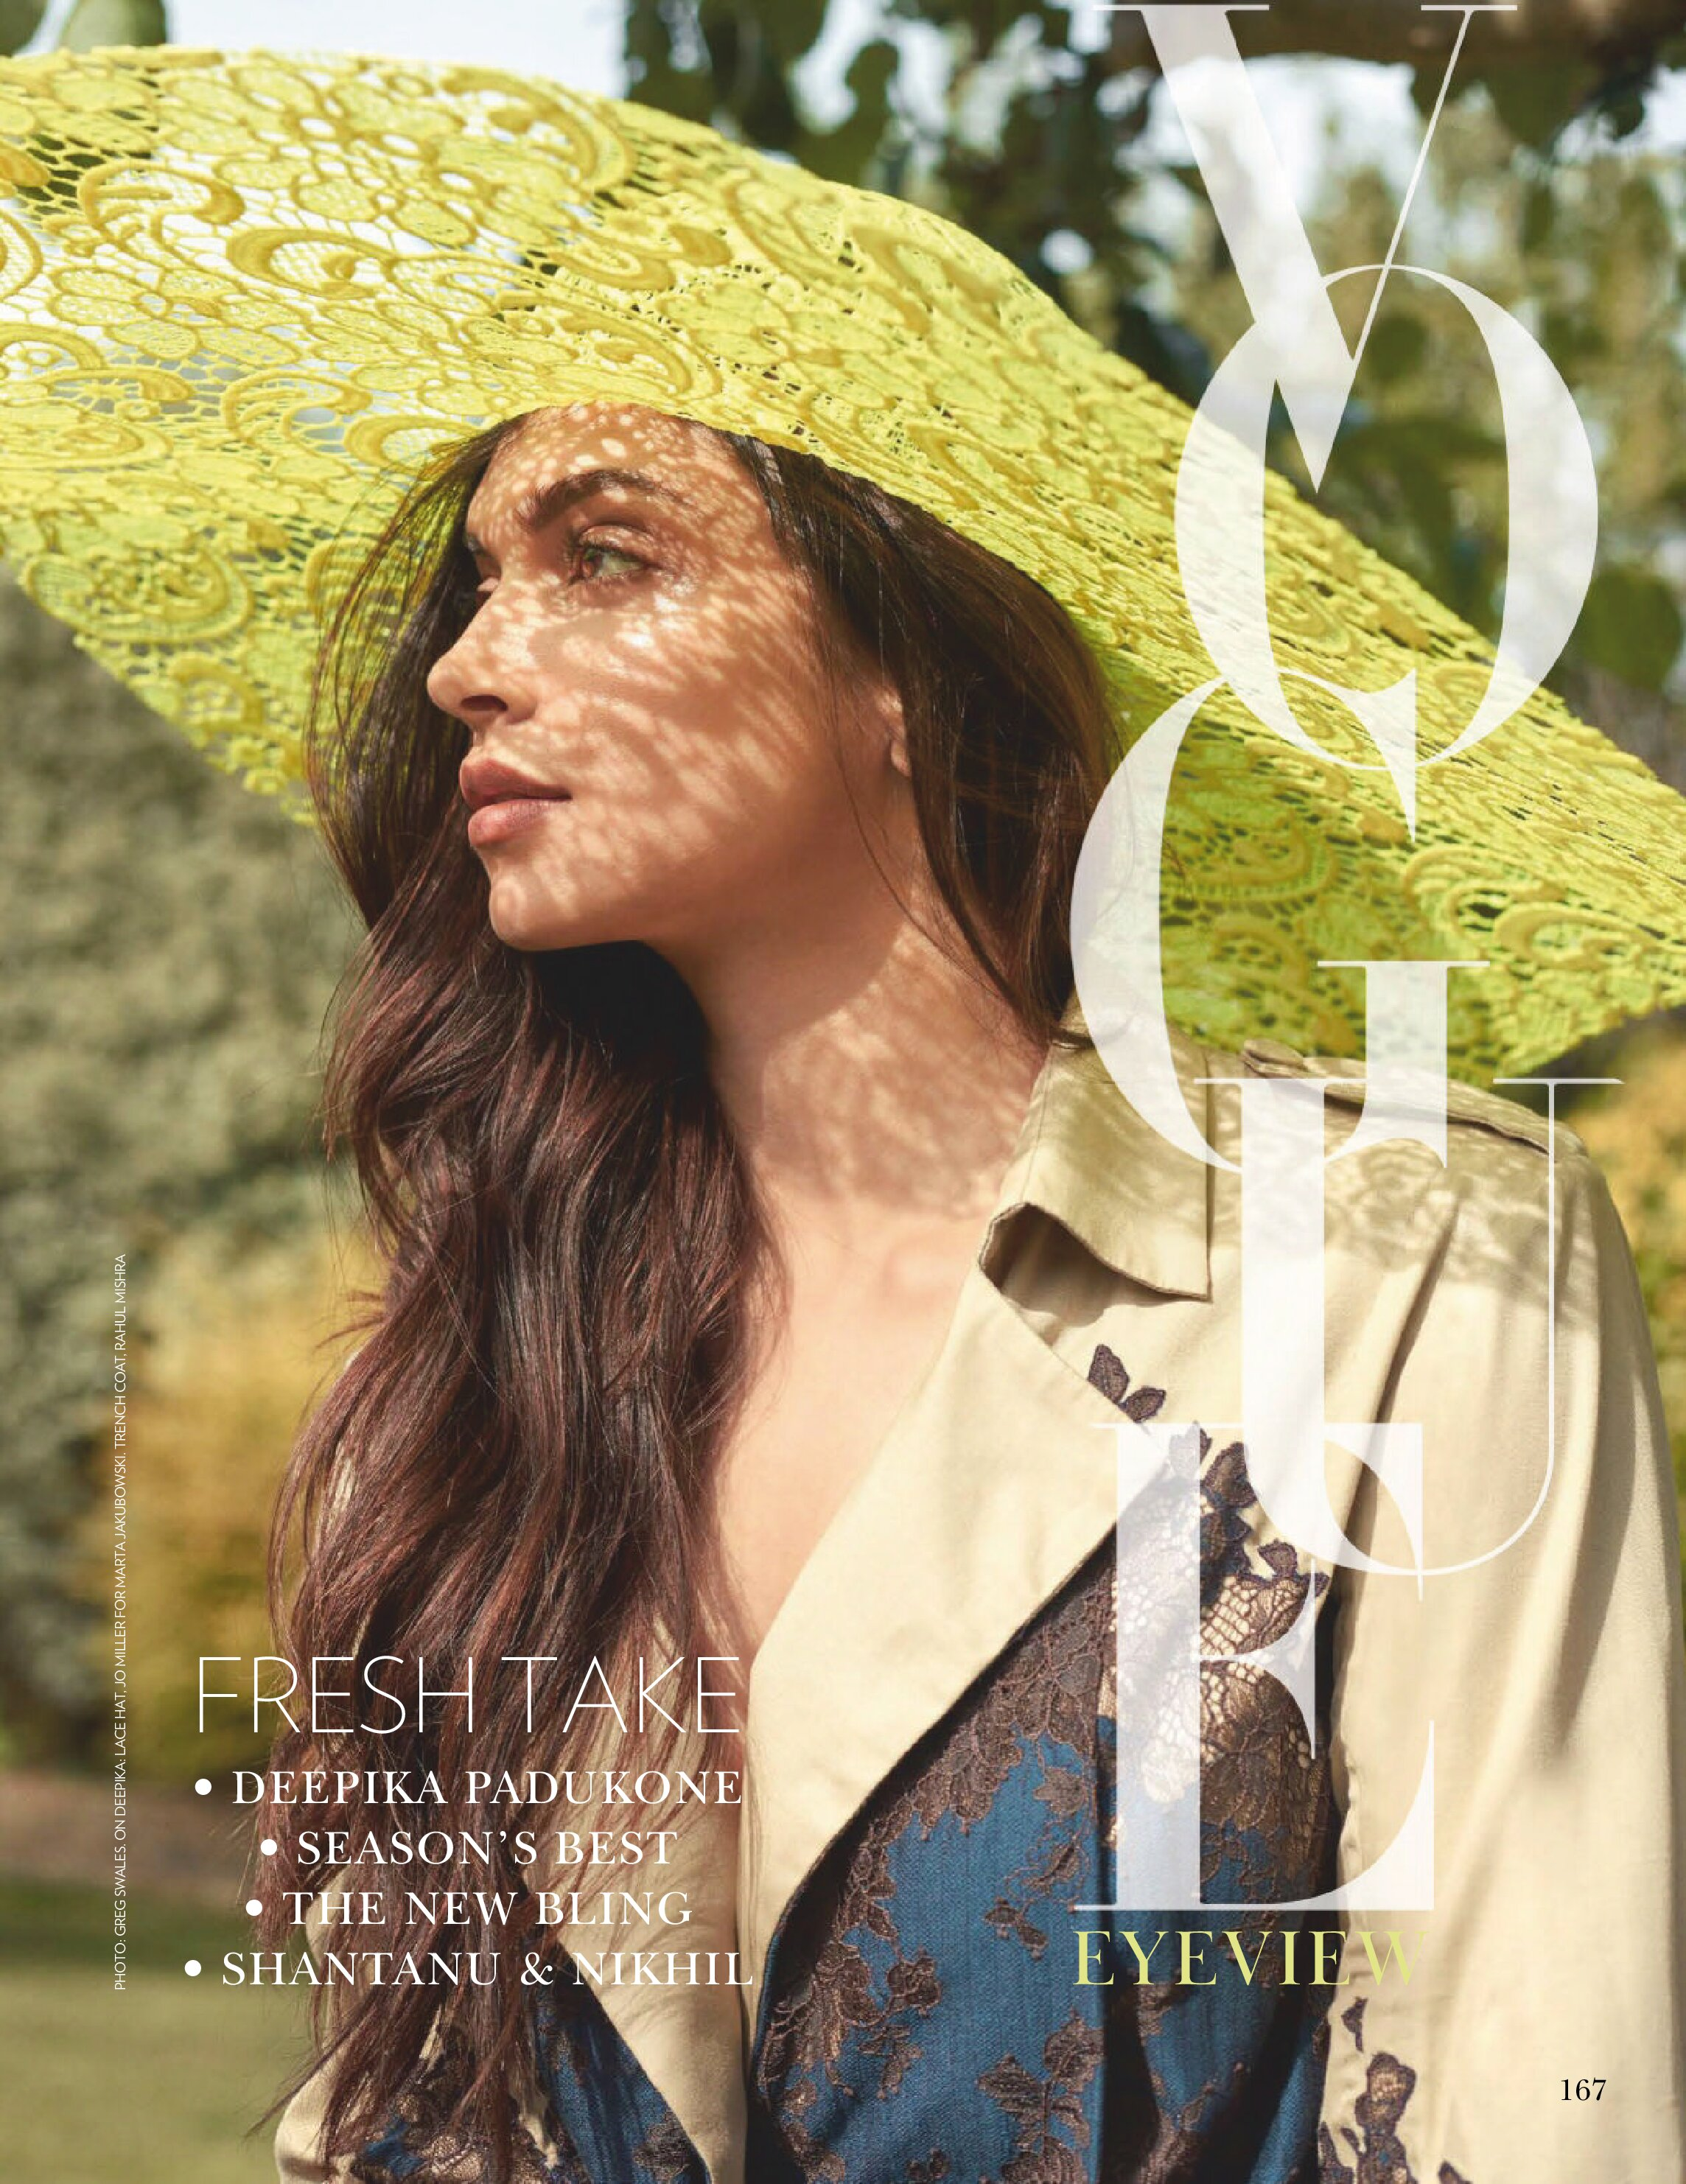 Deepika Padukone by Greg Swales for Vogue India August 2019 (2).jpg